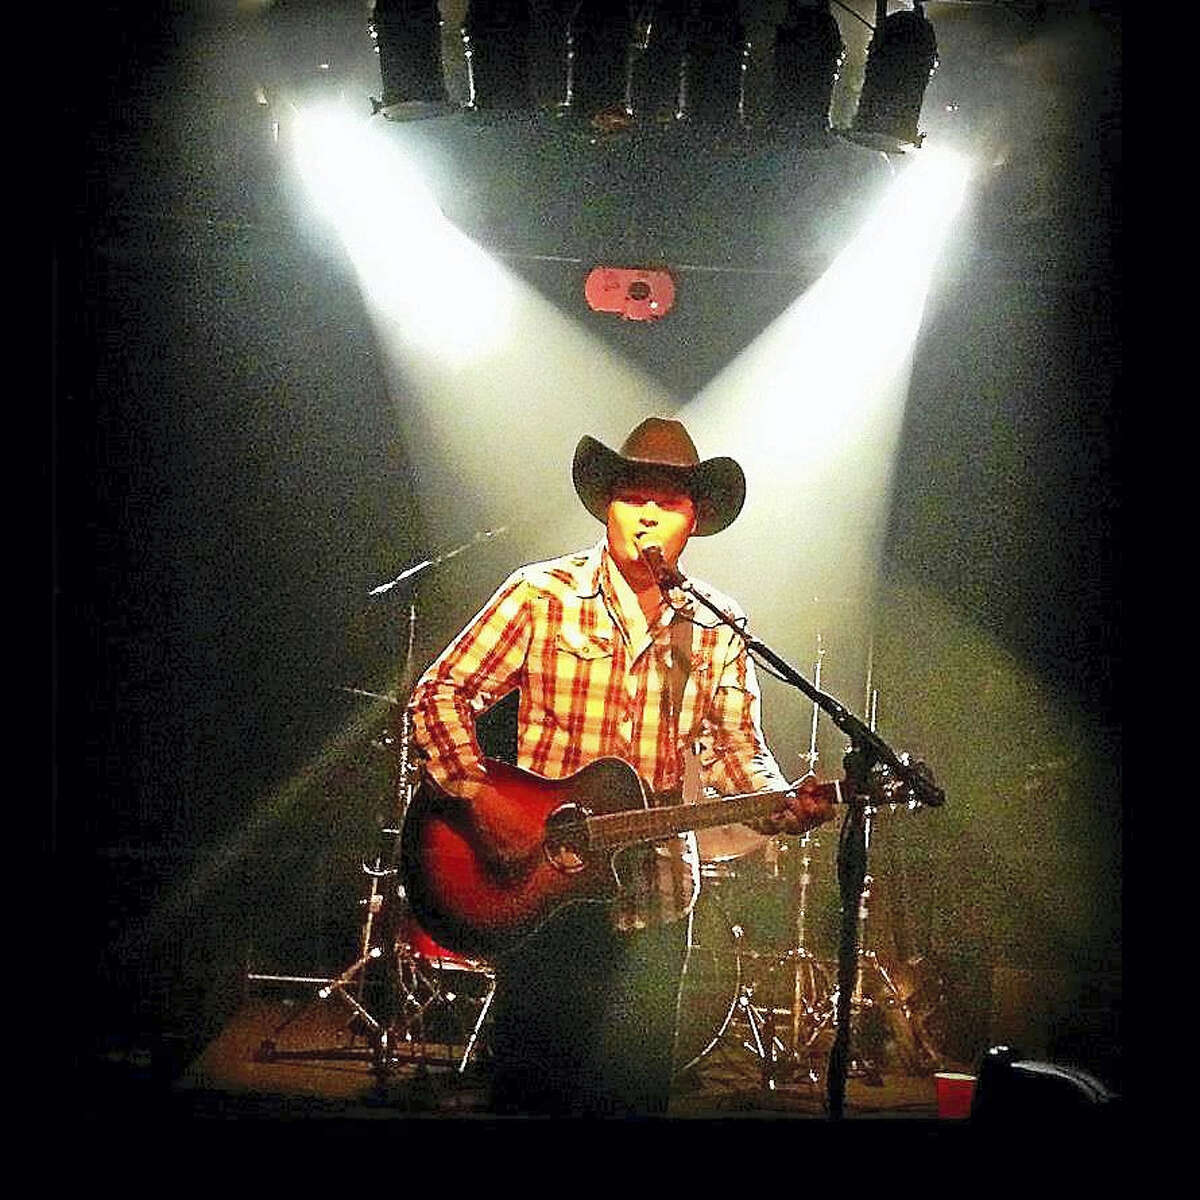 Contributed photo Cody Wolfe, a native of Torrington, is pursuing a country music singing career in Nashville, Tennessee, working with a manager and writing his own songs. He recently signed with a record label to record a new album.